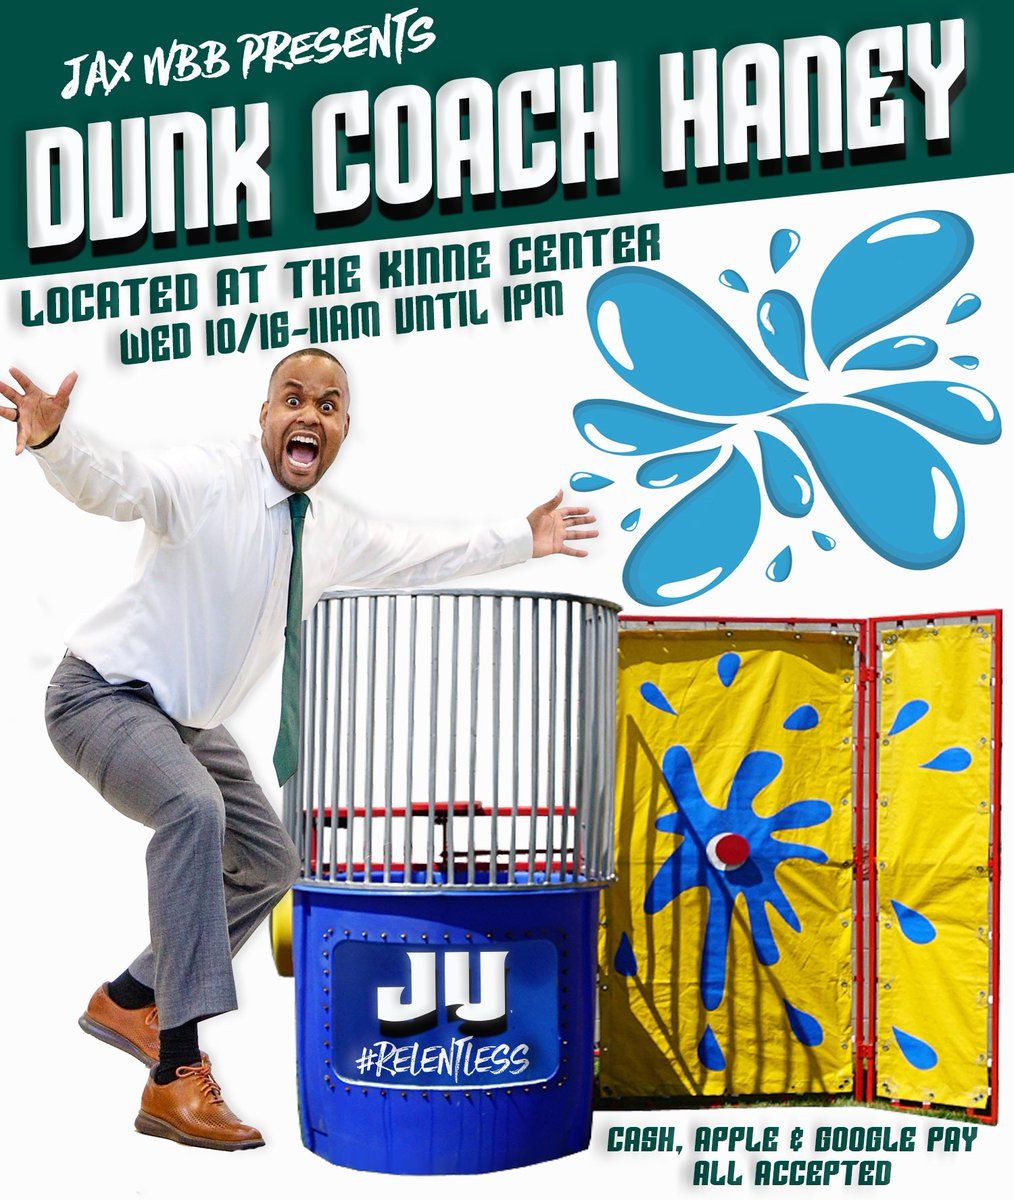 It's Homecoming week Dolphins 🐬 🐬🐬: Come by the Kinne Center on Wednesday for your chance to Dunk @coachdhaney 💦💦💦. This should be a lot of fun! #RELENTLESS @jacksonvilleu @judolphinssaac @ju_dolphinradio @jax_dolphins